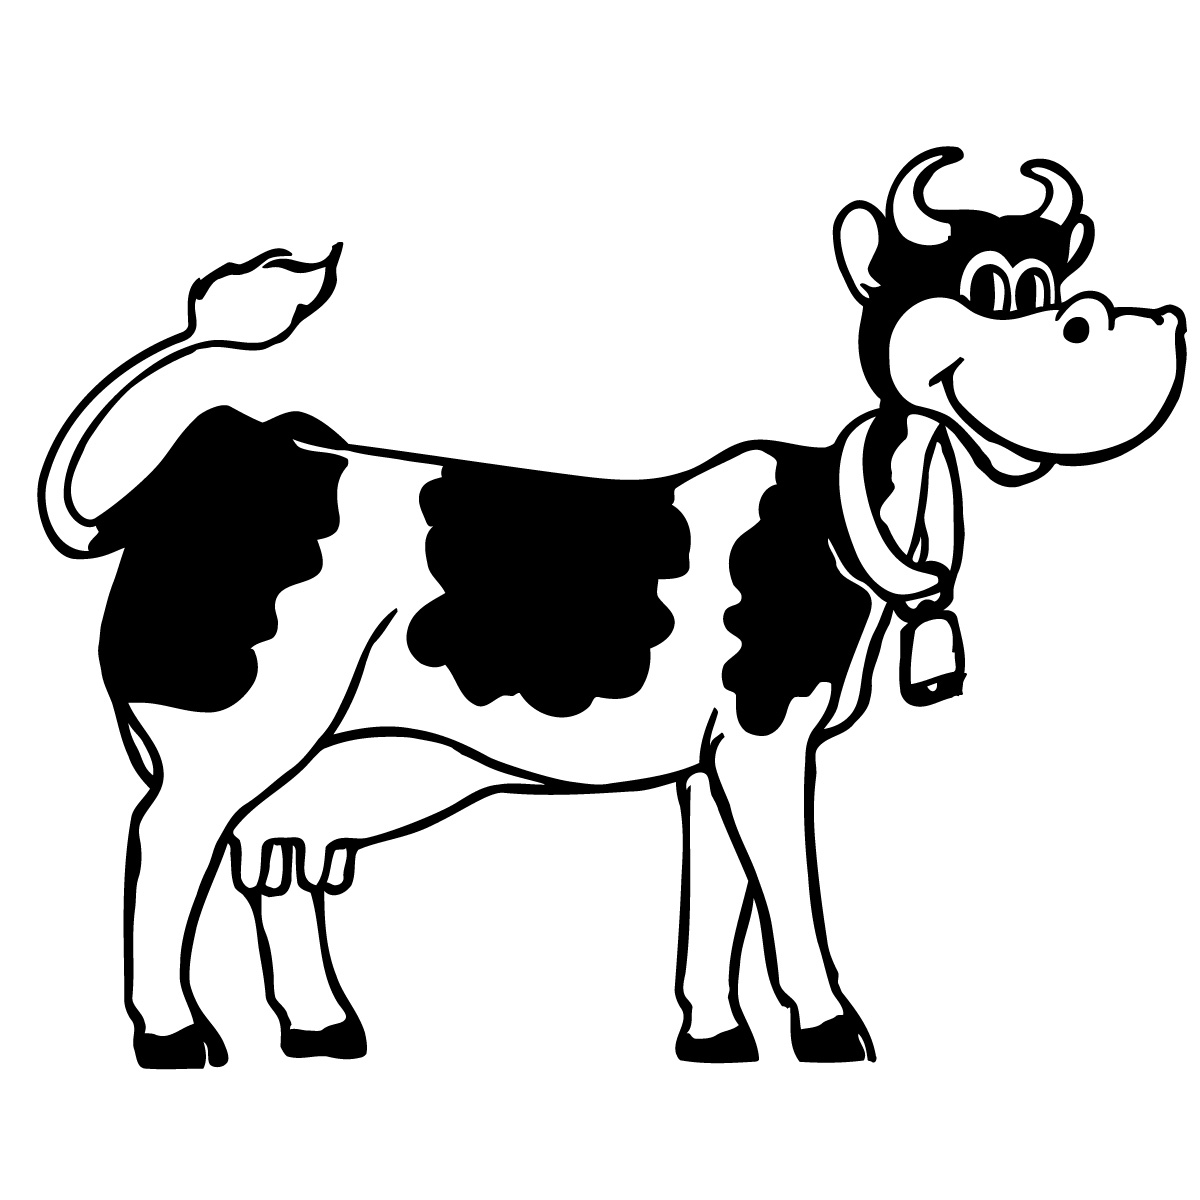 Free Image Of Cows, Download Free Clip Art, Free Clip Art on.